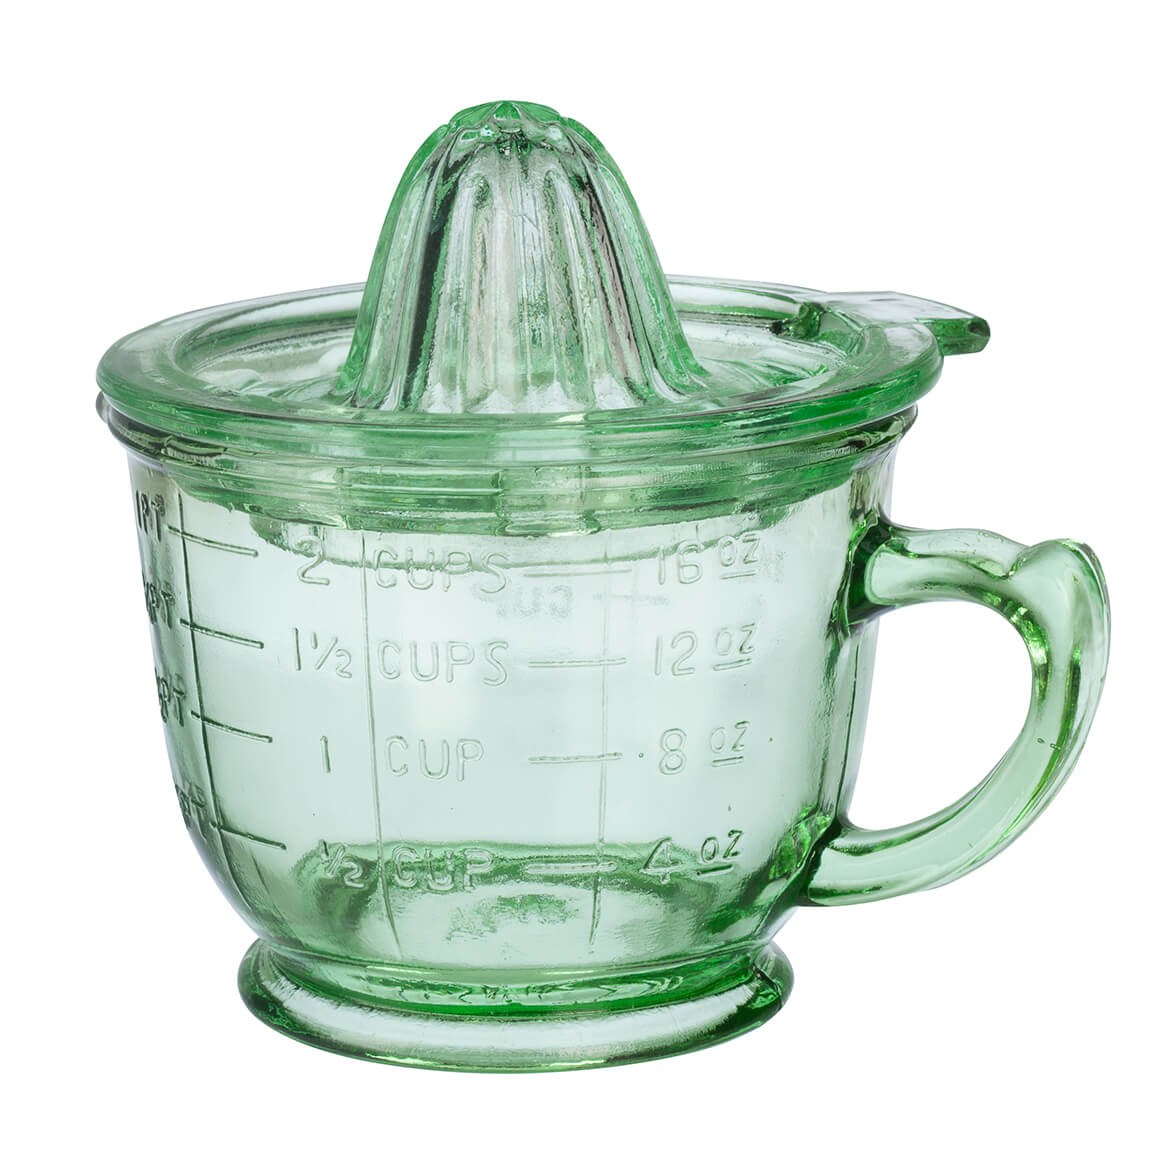 Nostaligia Glass 16oz. Citrus Juicer by Home MarketPlace-363814